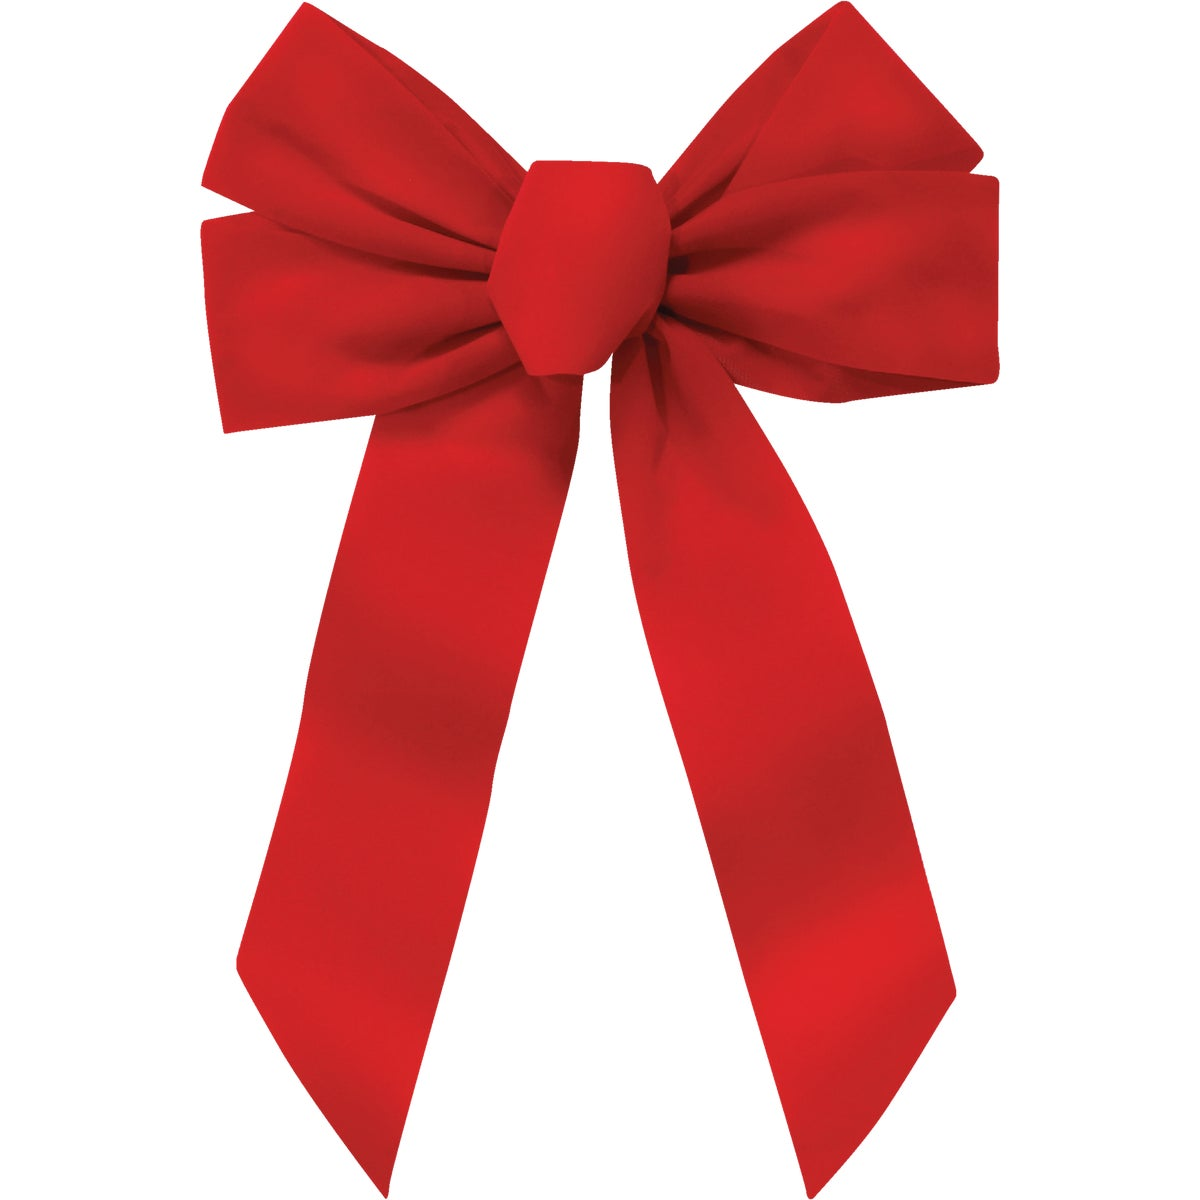 11X16 4 LOOP RED BOW